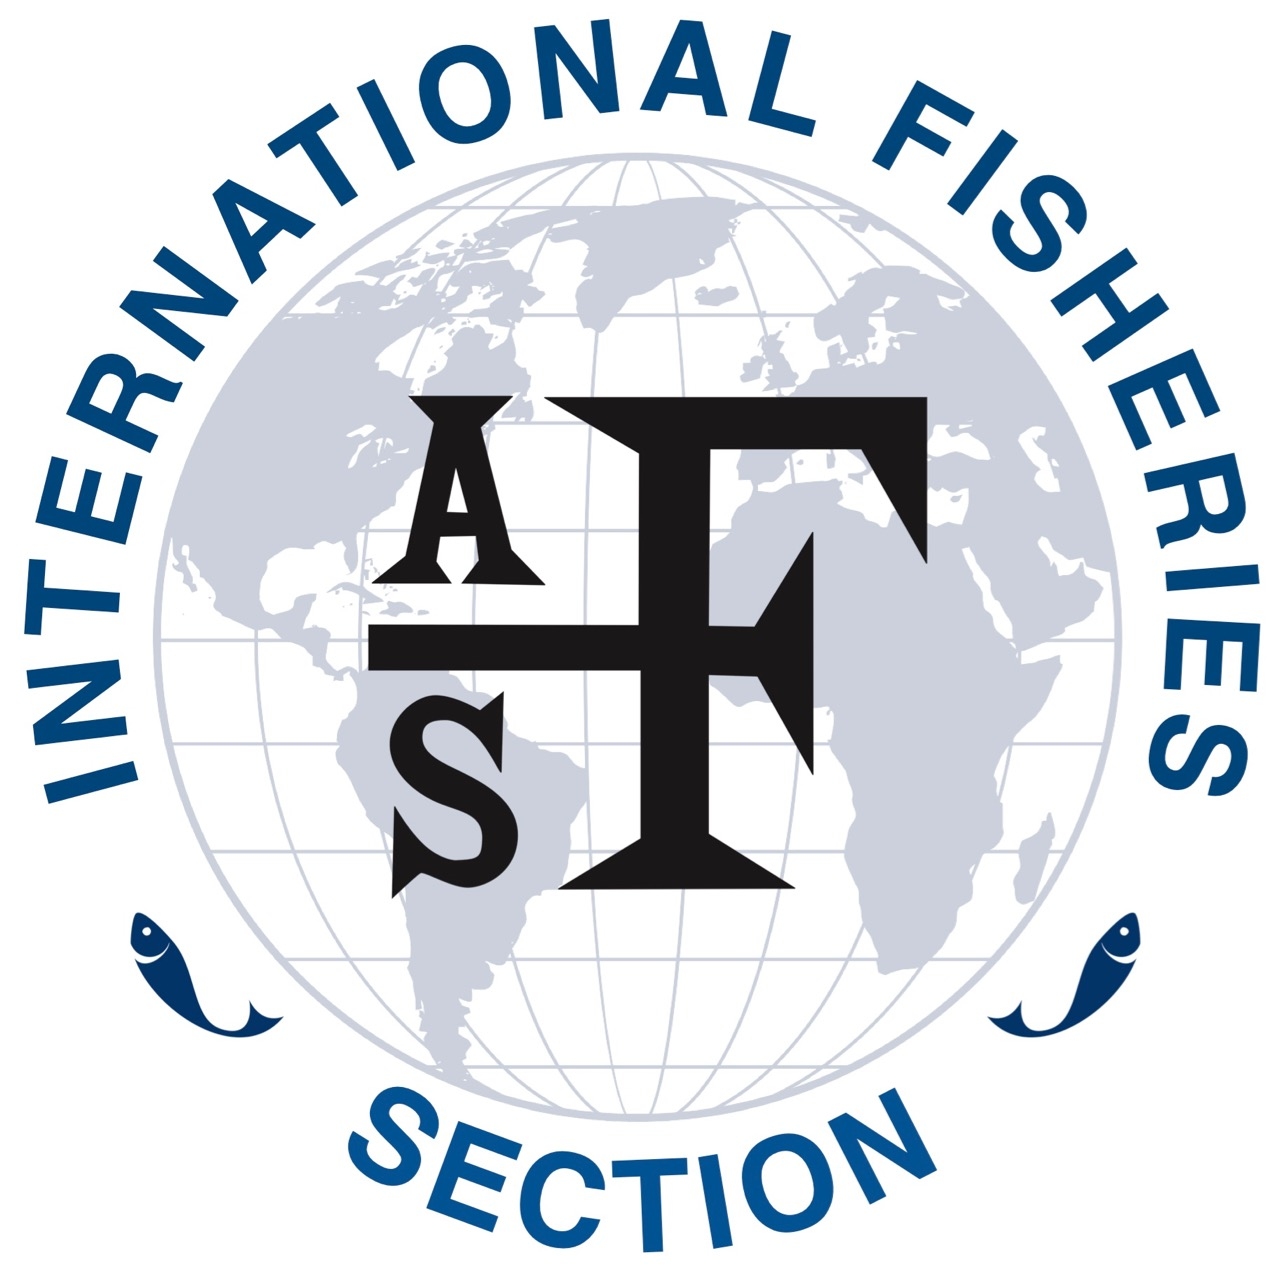 International Fisheries Section